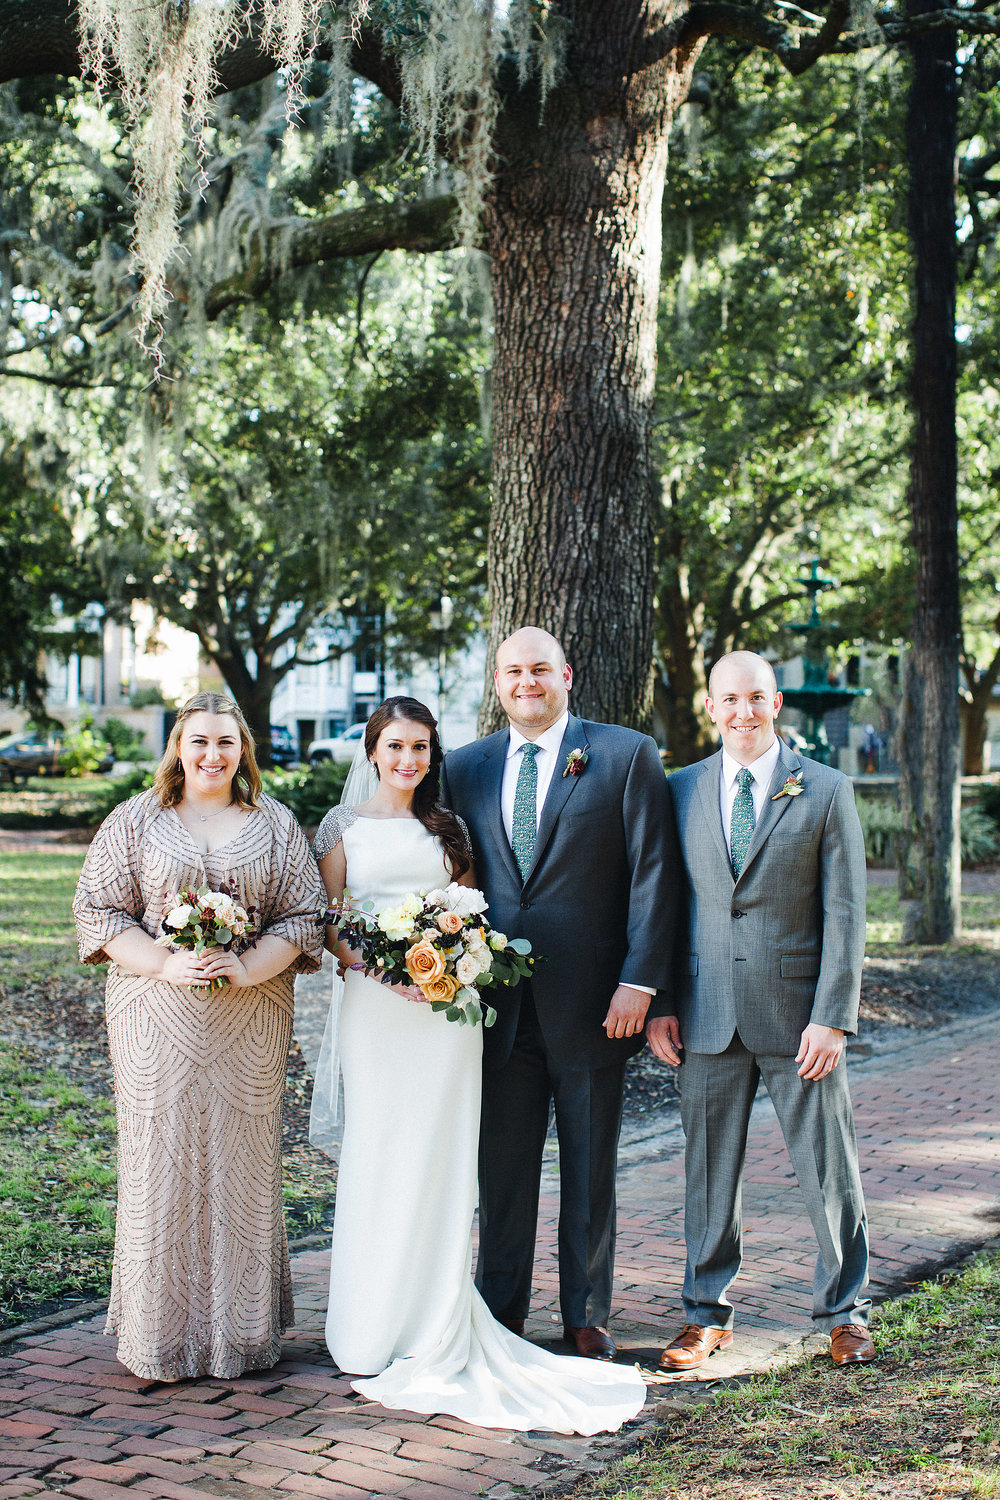 izzy-hudgins-photography-savannah-wedding-ivory-and-beau-bridal-boutique-savannah-wedding-planner-colonial-house-of-flowers-forsyth-park-wedding-old-fort-jackson-wedding-squidwed-films-savannah-boutique-savannah-weddings-23.jpg